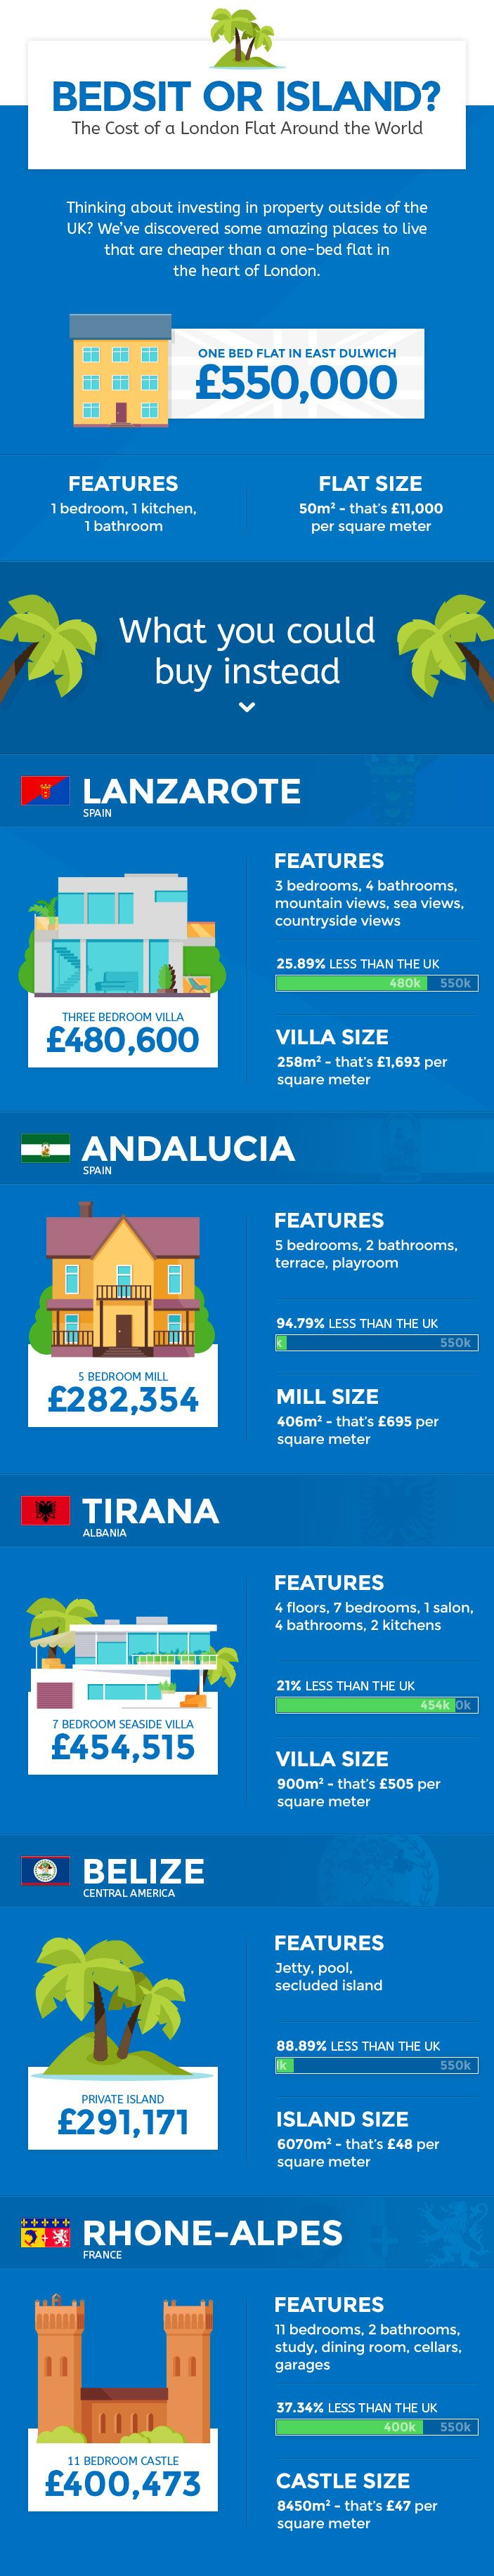 The Price of Property - London Flat Vs. Islands and Castles Across The Globe